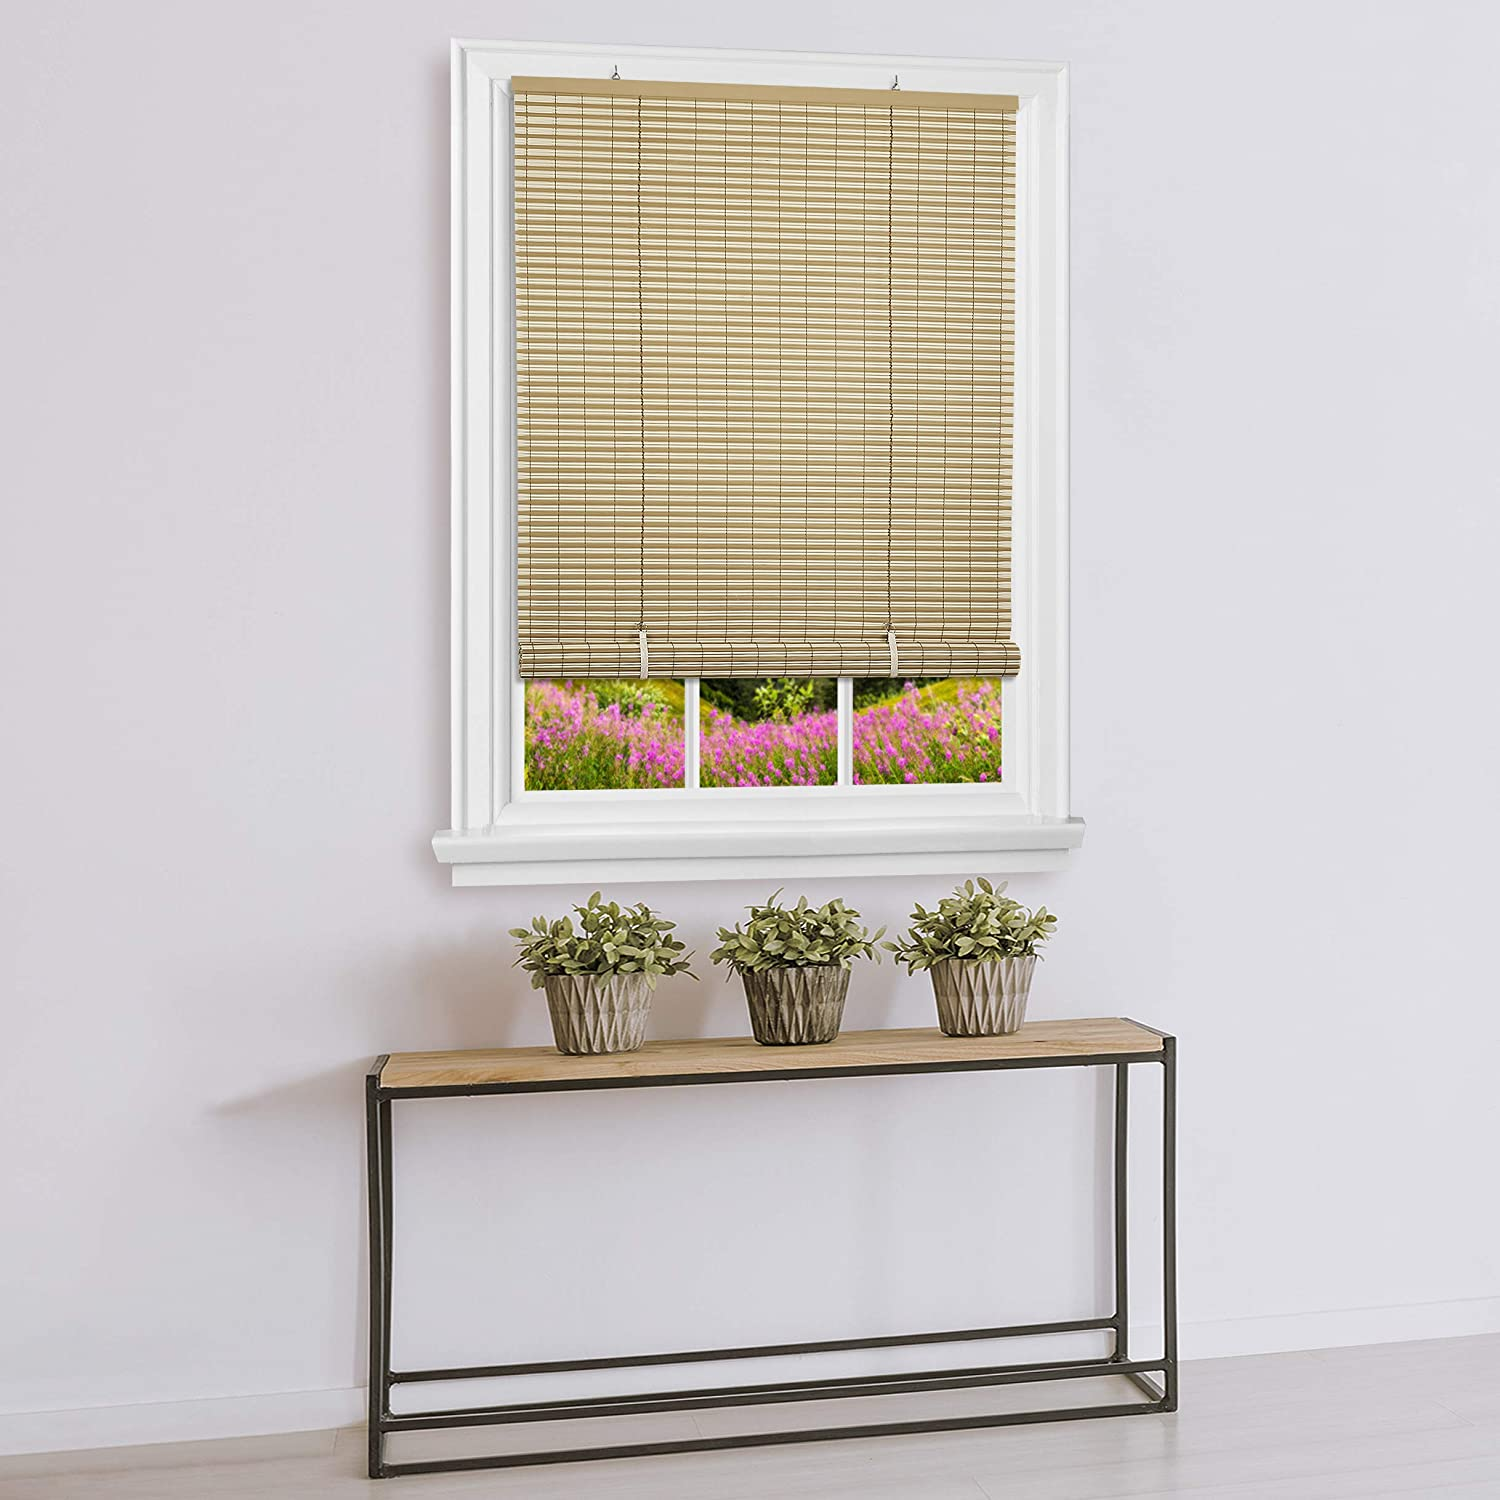 "Achim Home Furnishings Vinyl Roll-Up Blind Cordless Veranda, 30"" x 72"", Desert/Almond"